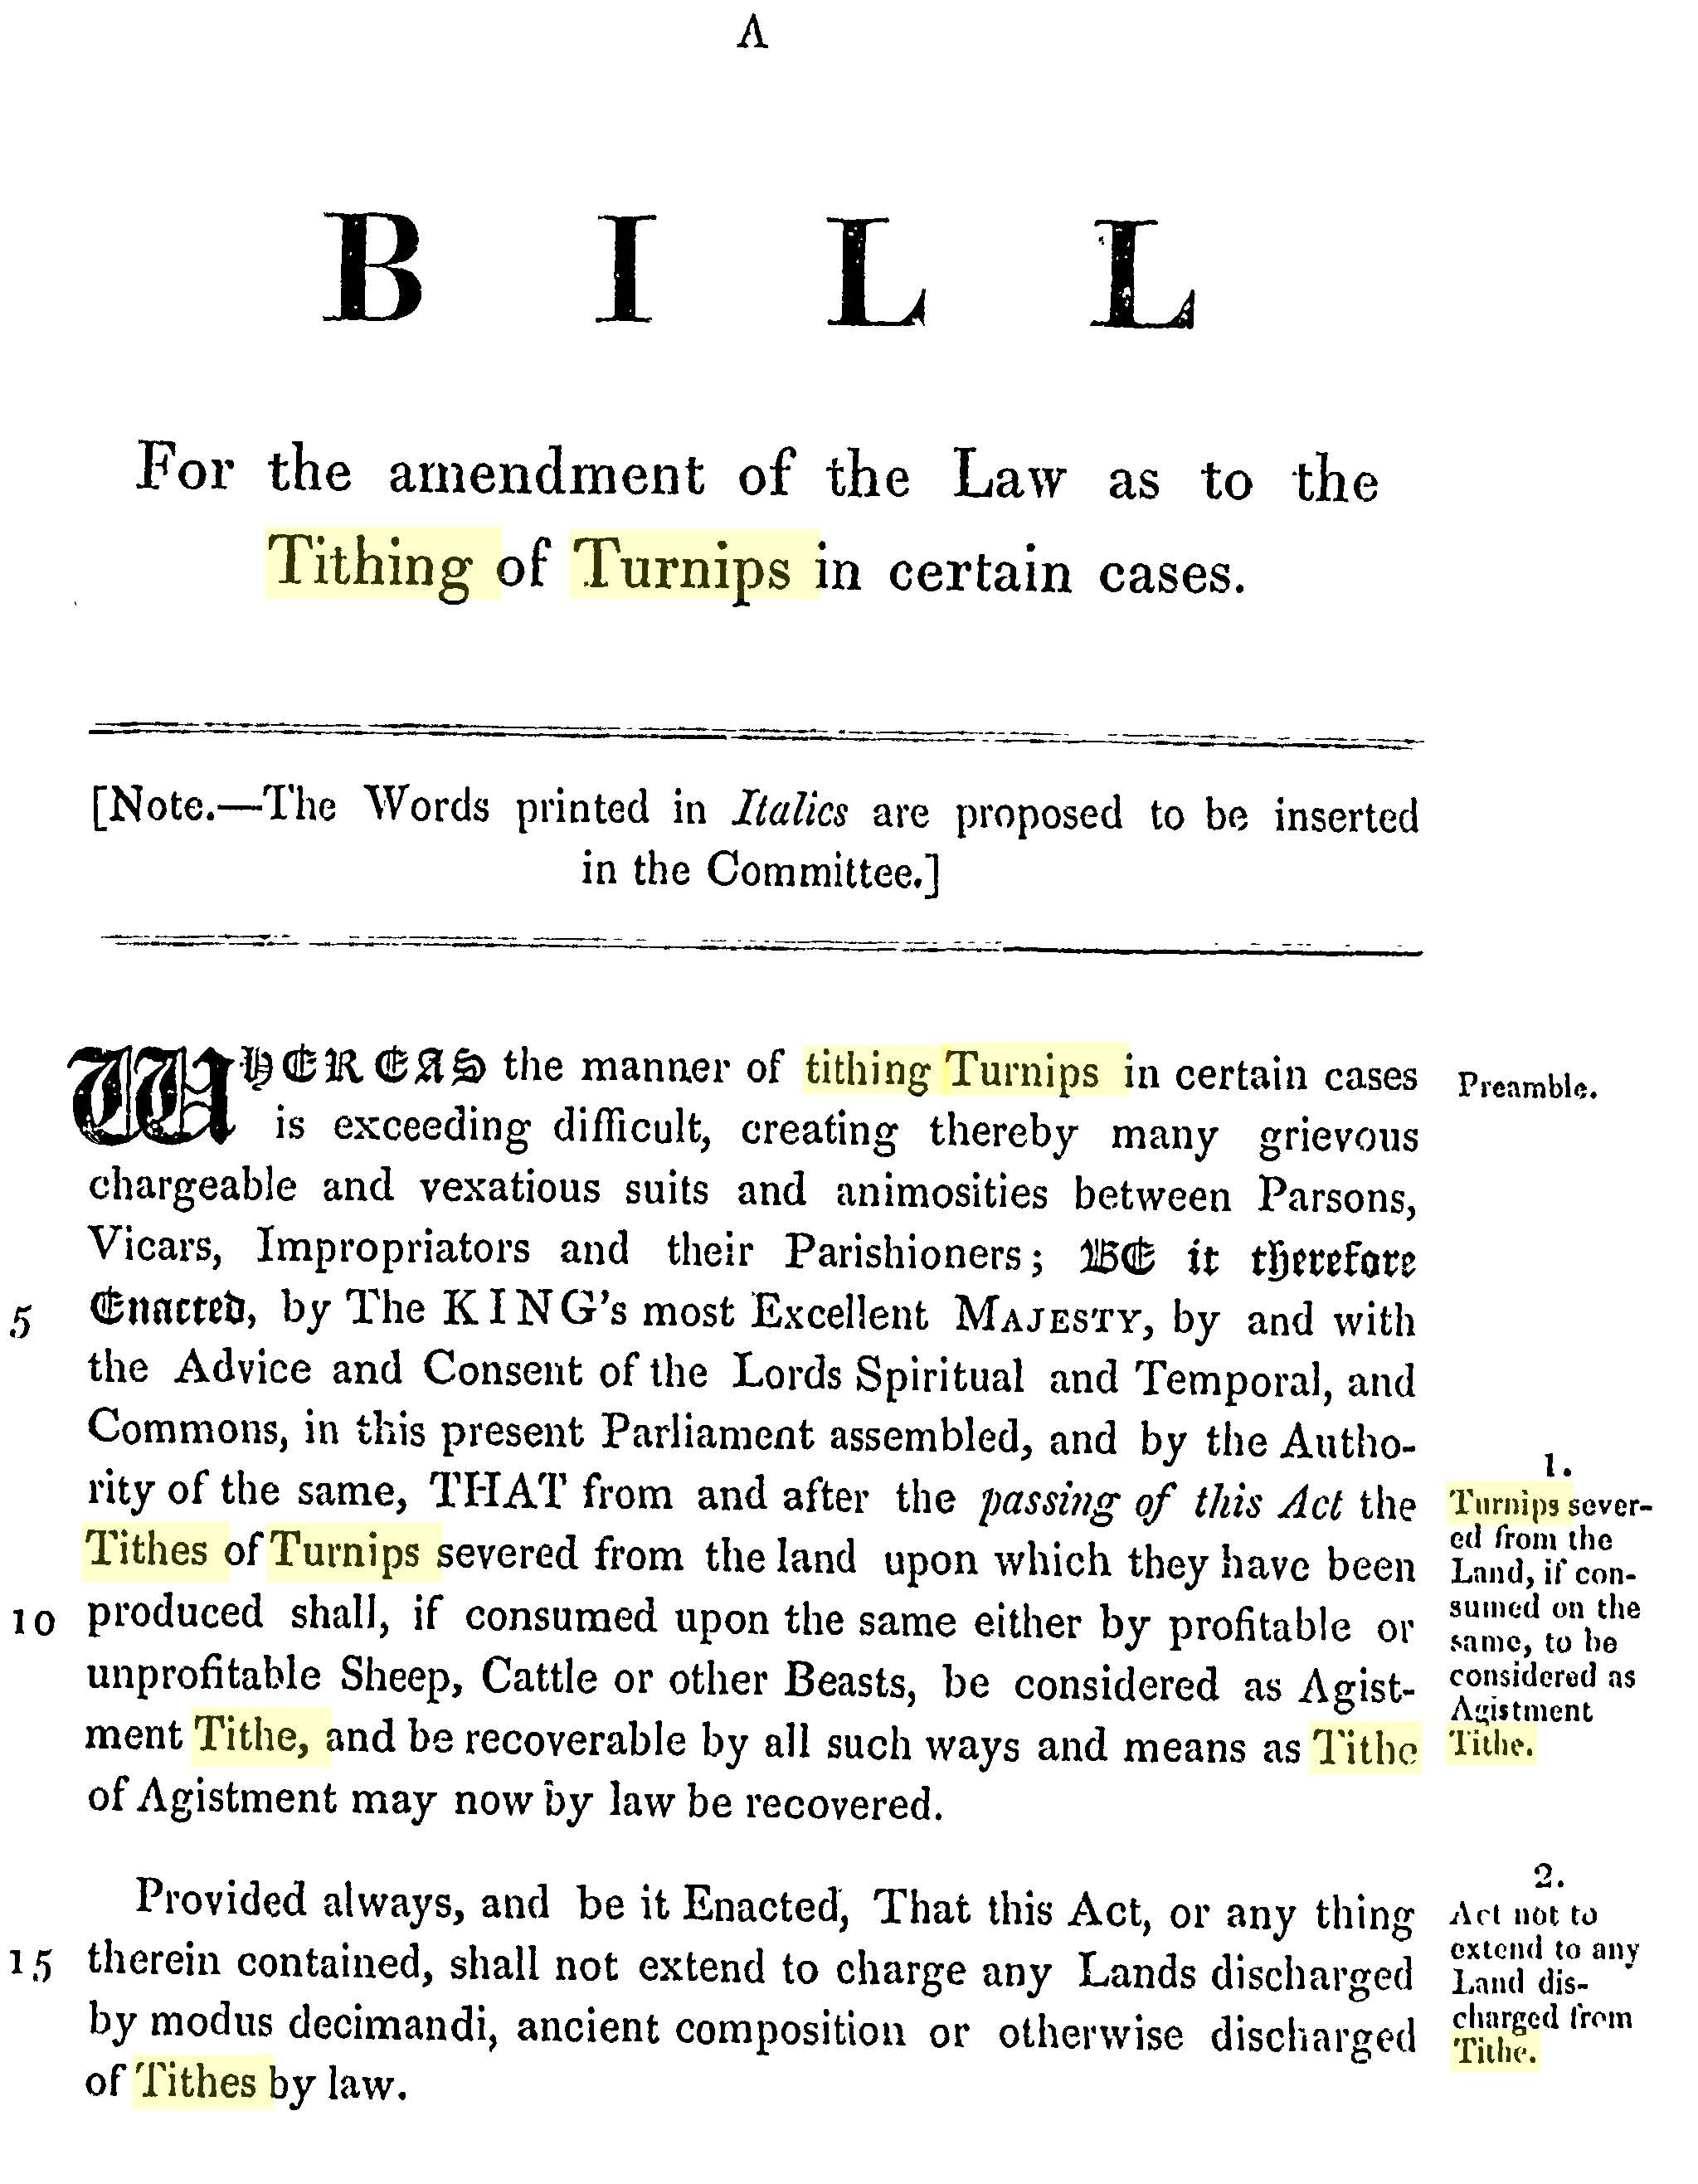 Act passed in 1835 to reject the Tithing of Turnips by the Vicar of East Meon, Rev Thomas Cooke Kemp.